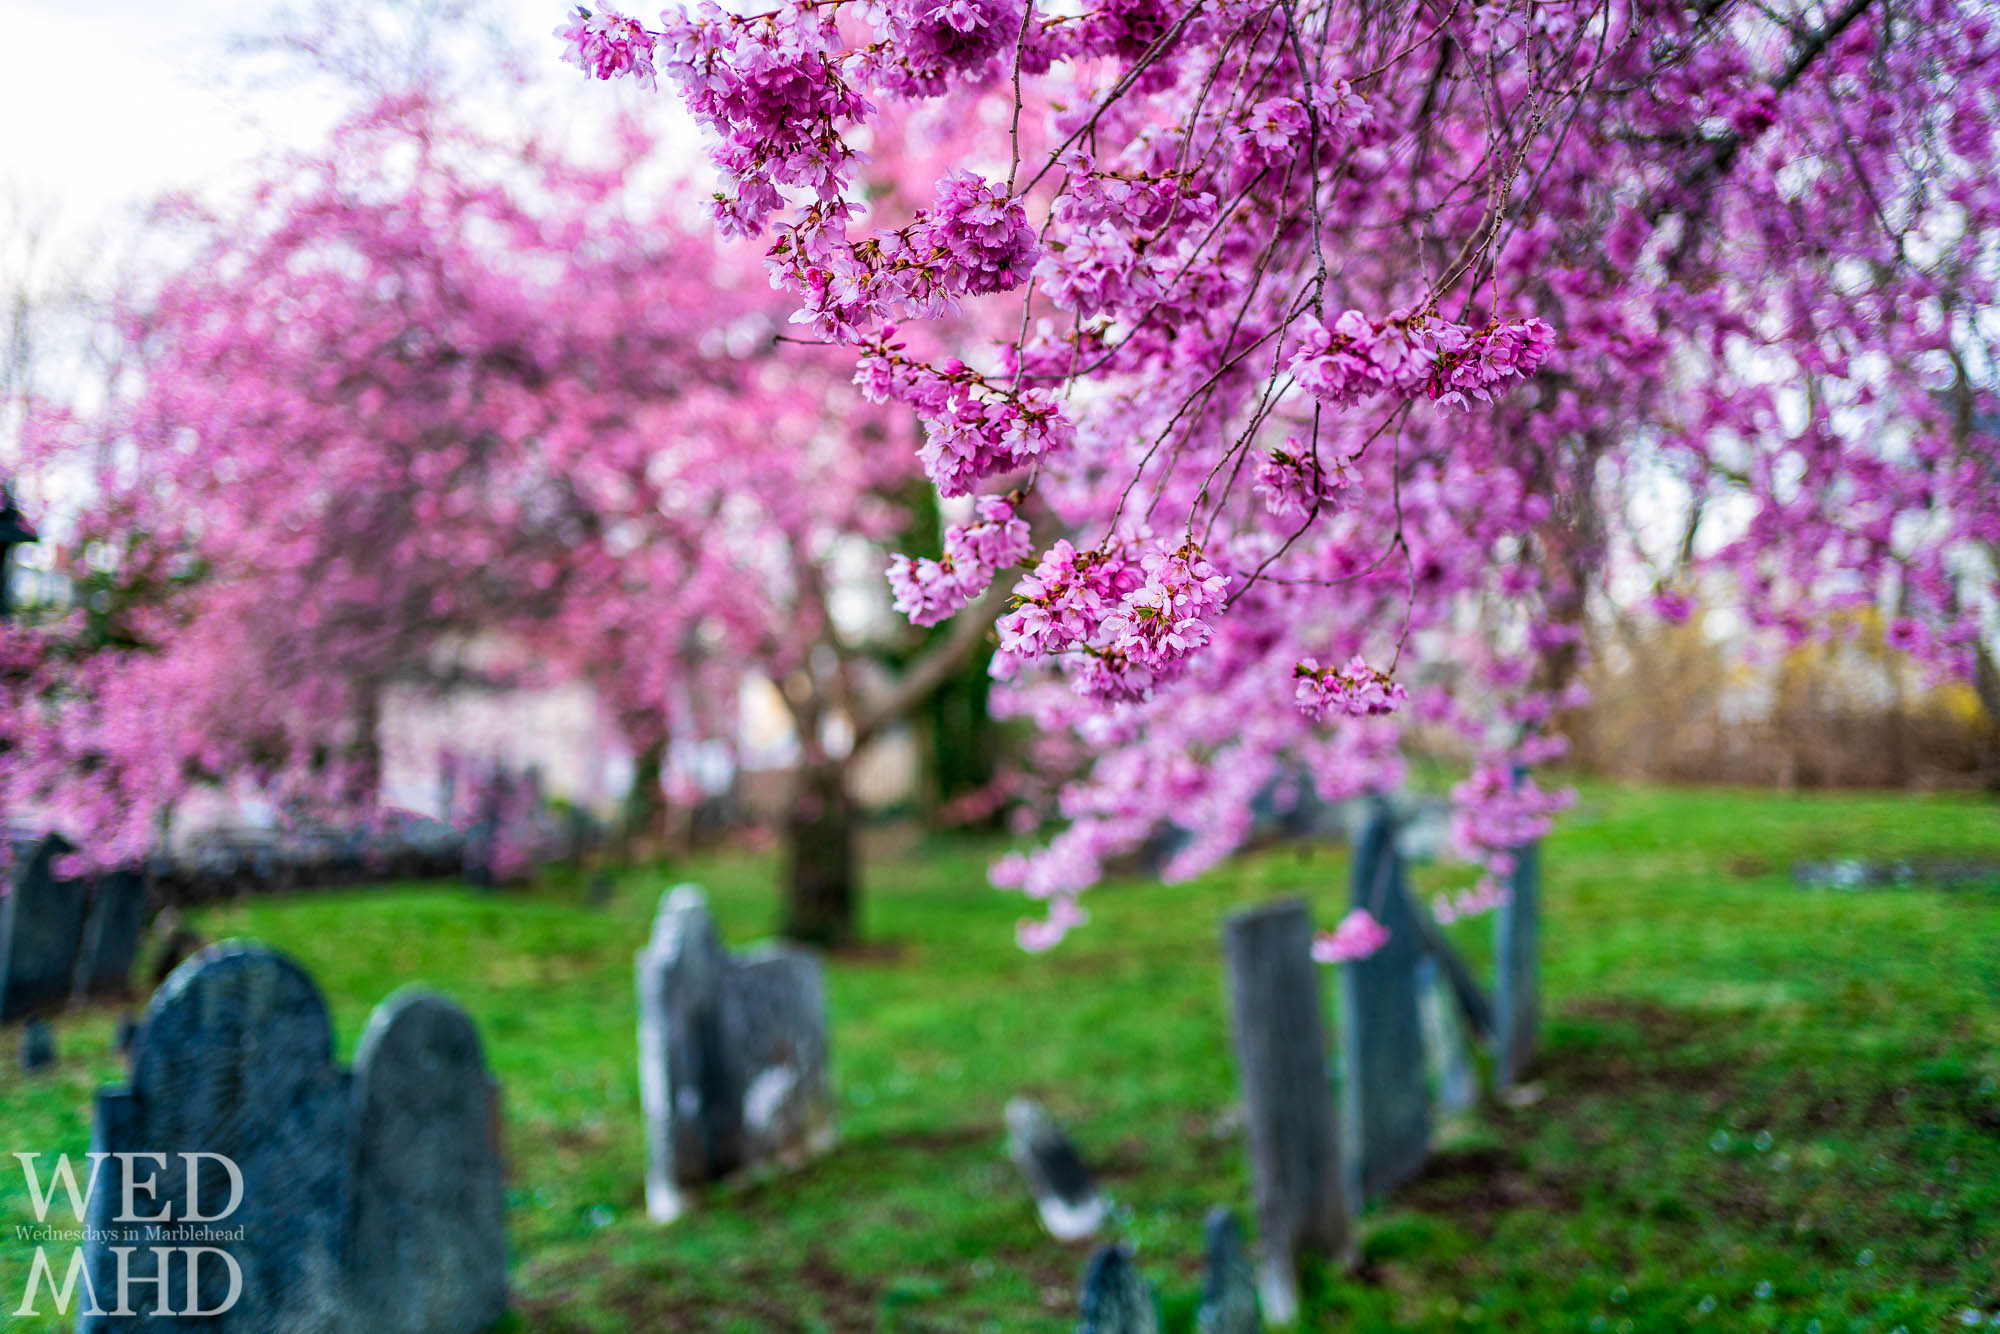 Peak blossoms captured amongst the tombstones at the Harris Street Cemetery in Marblehead